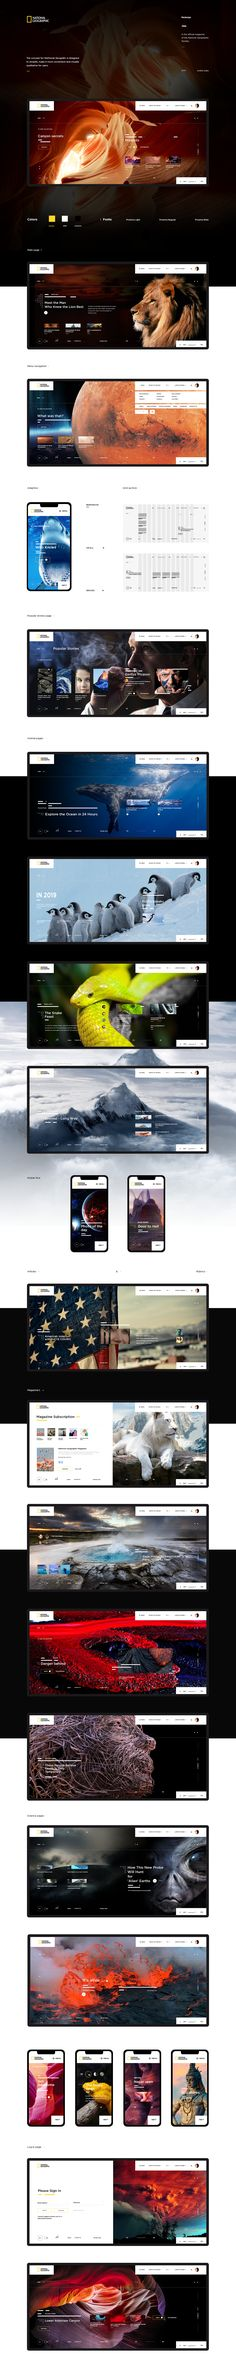 National Geographic - redesign concept on Behance